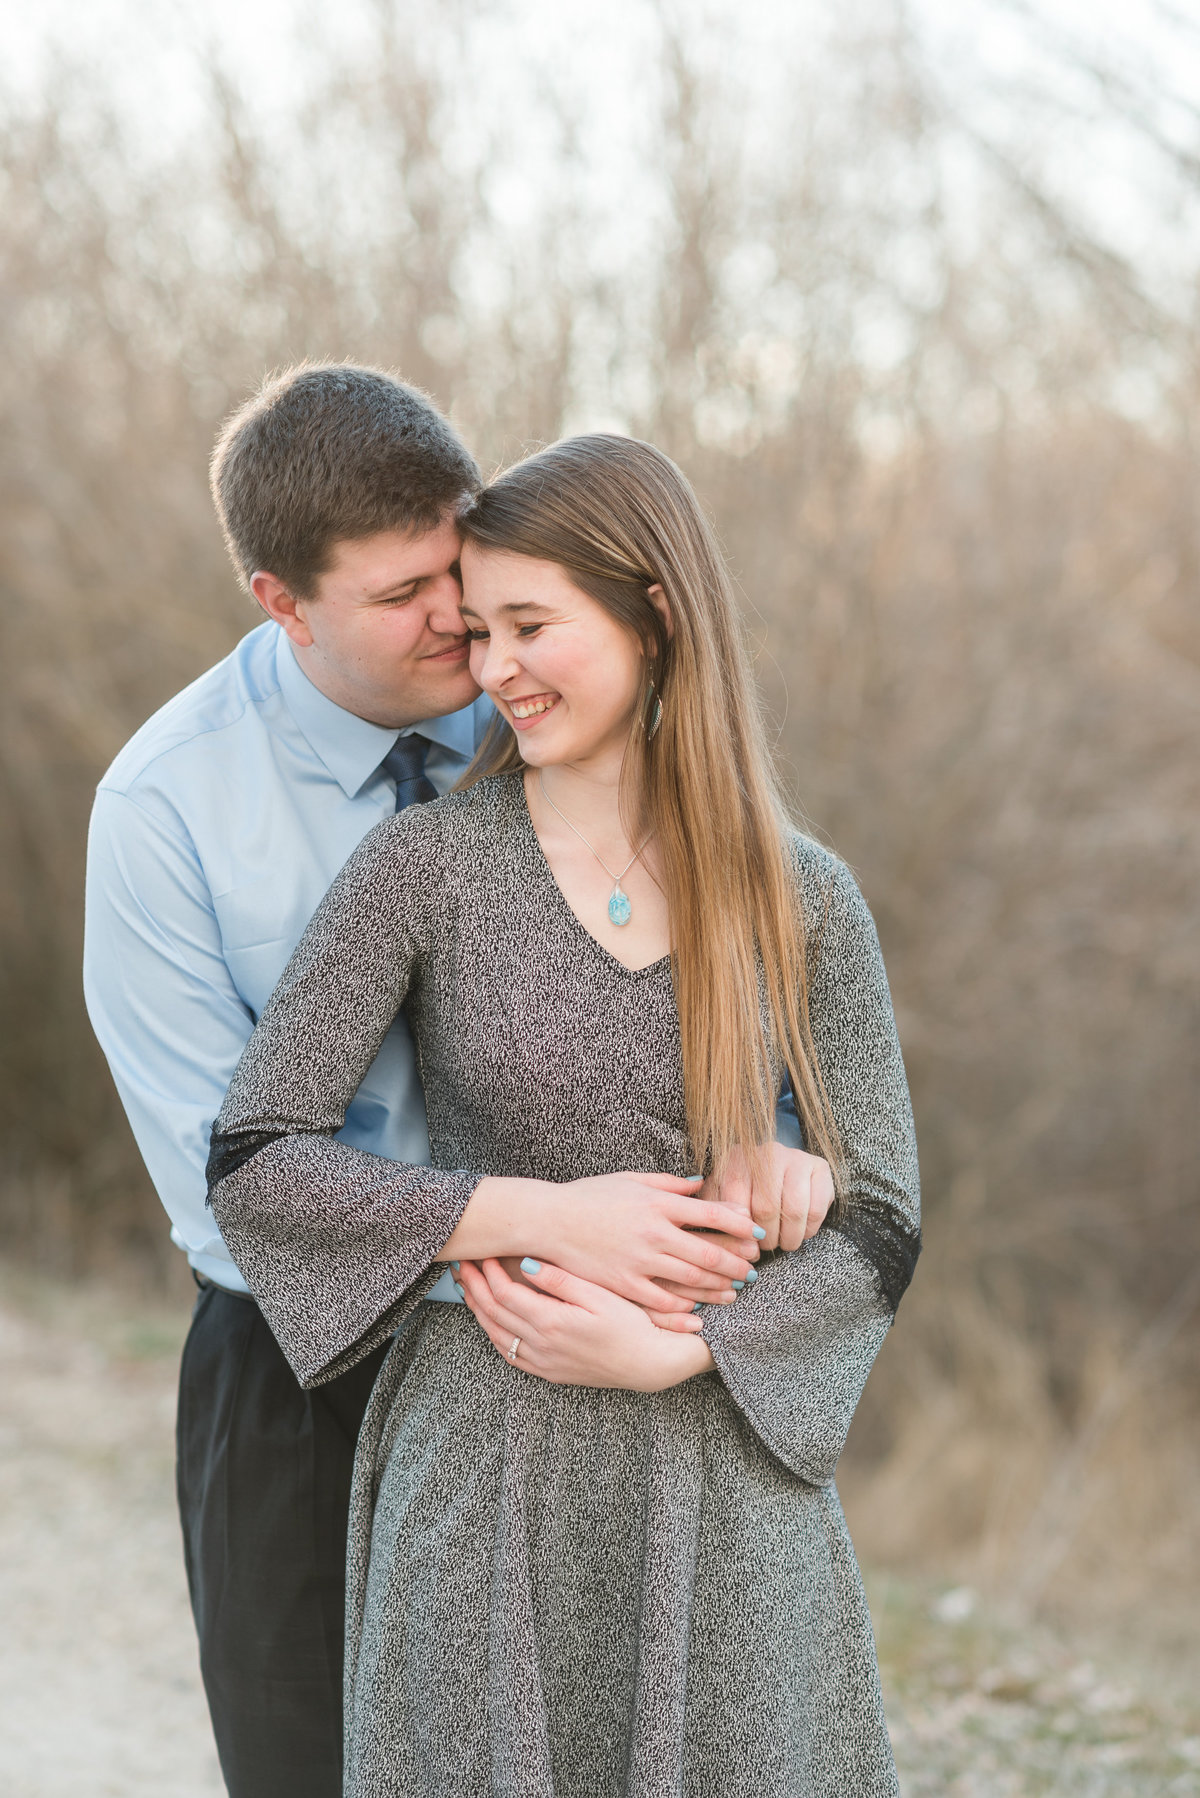 20190302 - Jannae and Forest Engagement Session 078-Edit - A Winter Reid Merrill Park Engagement Session